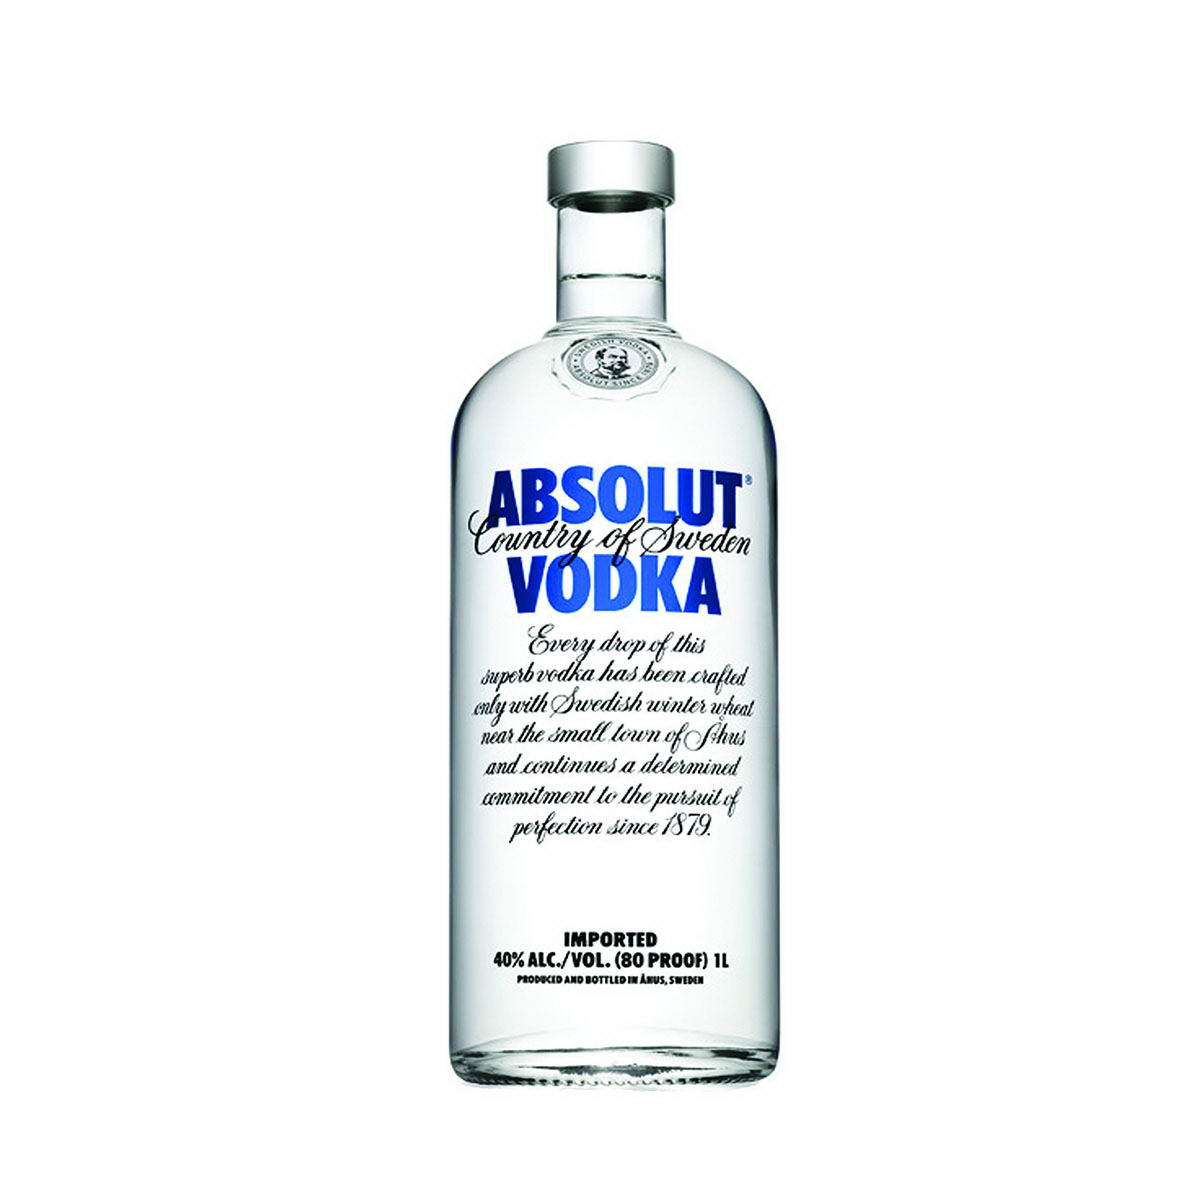 Absolut vodka